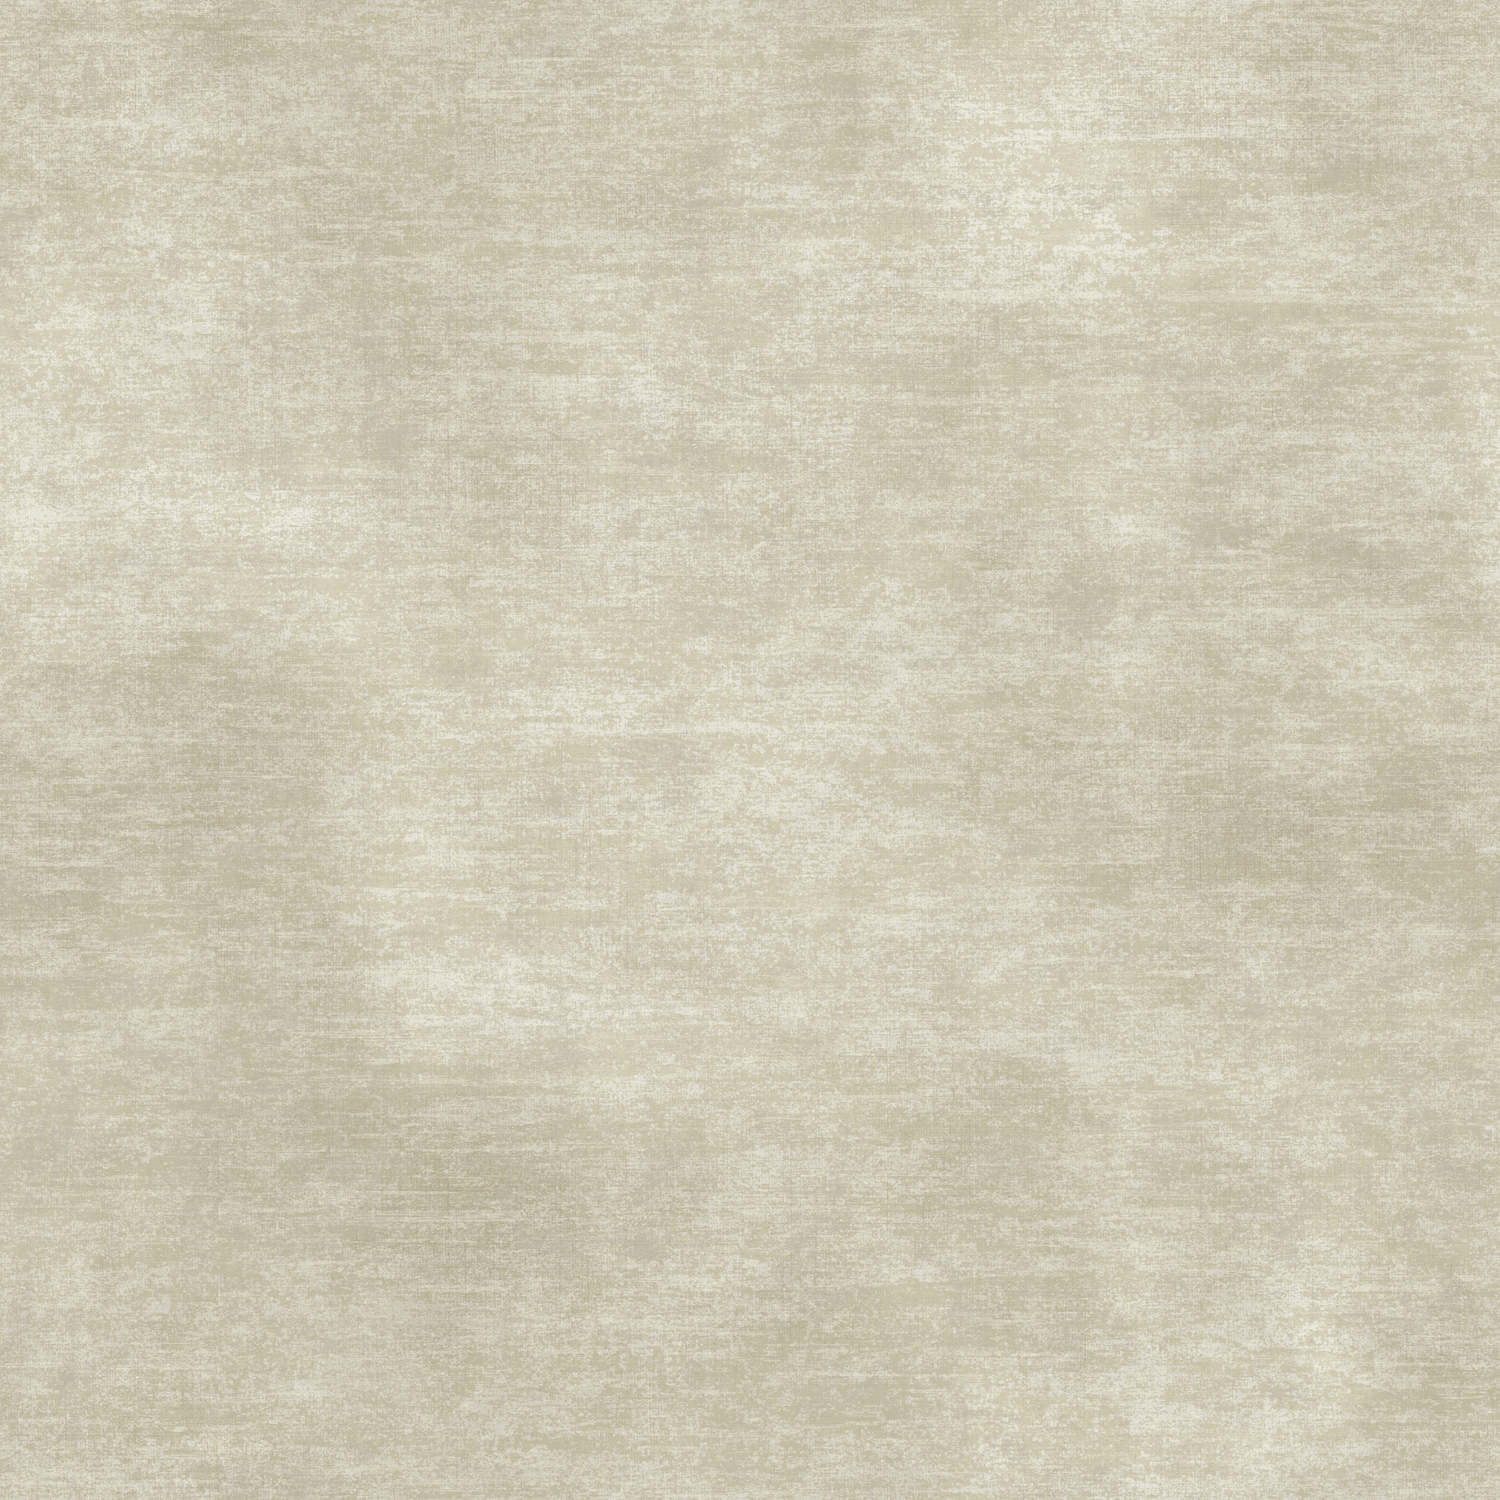 Picture of Asha Gold Lotus Texture Wallpaper